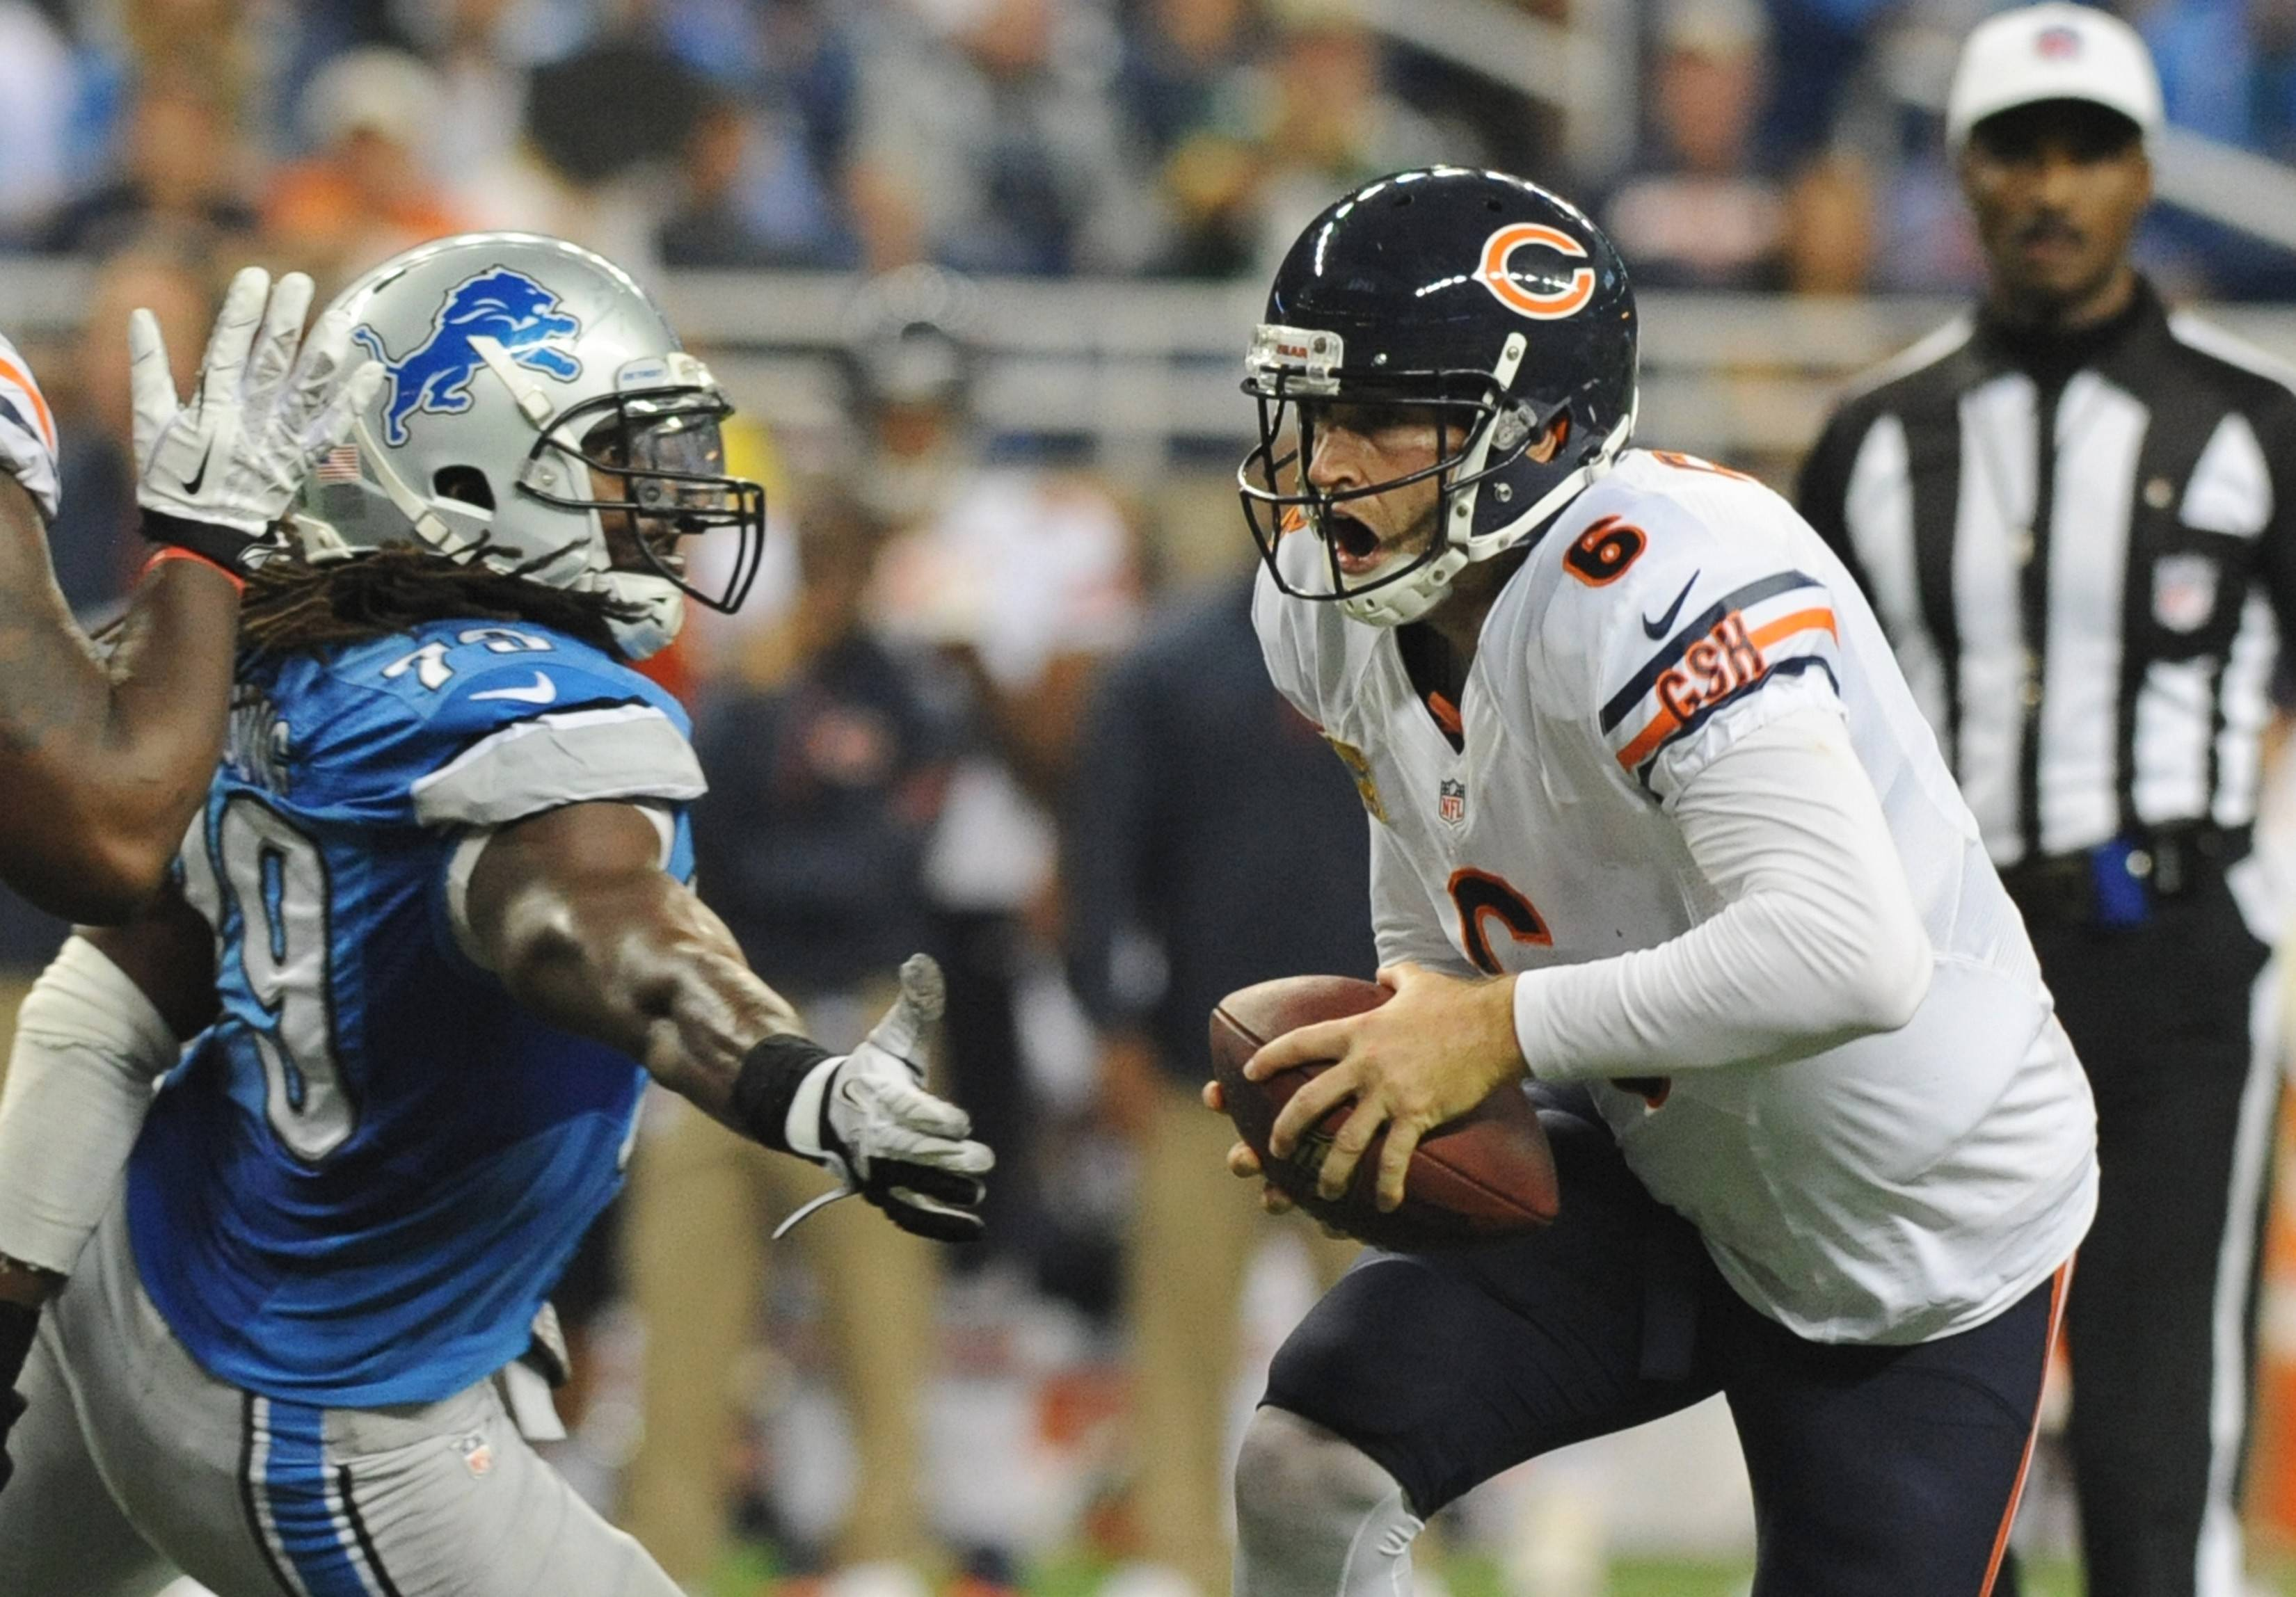 Chicago Bears quarterback Jay Cutler scrambles while chased by Detroit Lions defensive end Willie Young last September. Young signed a three-year deal worth $9 million to play for the Bears.